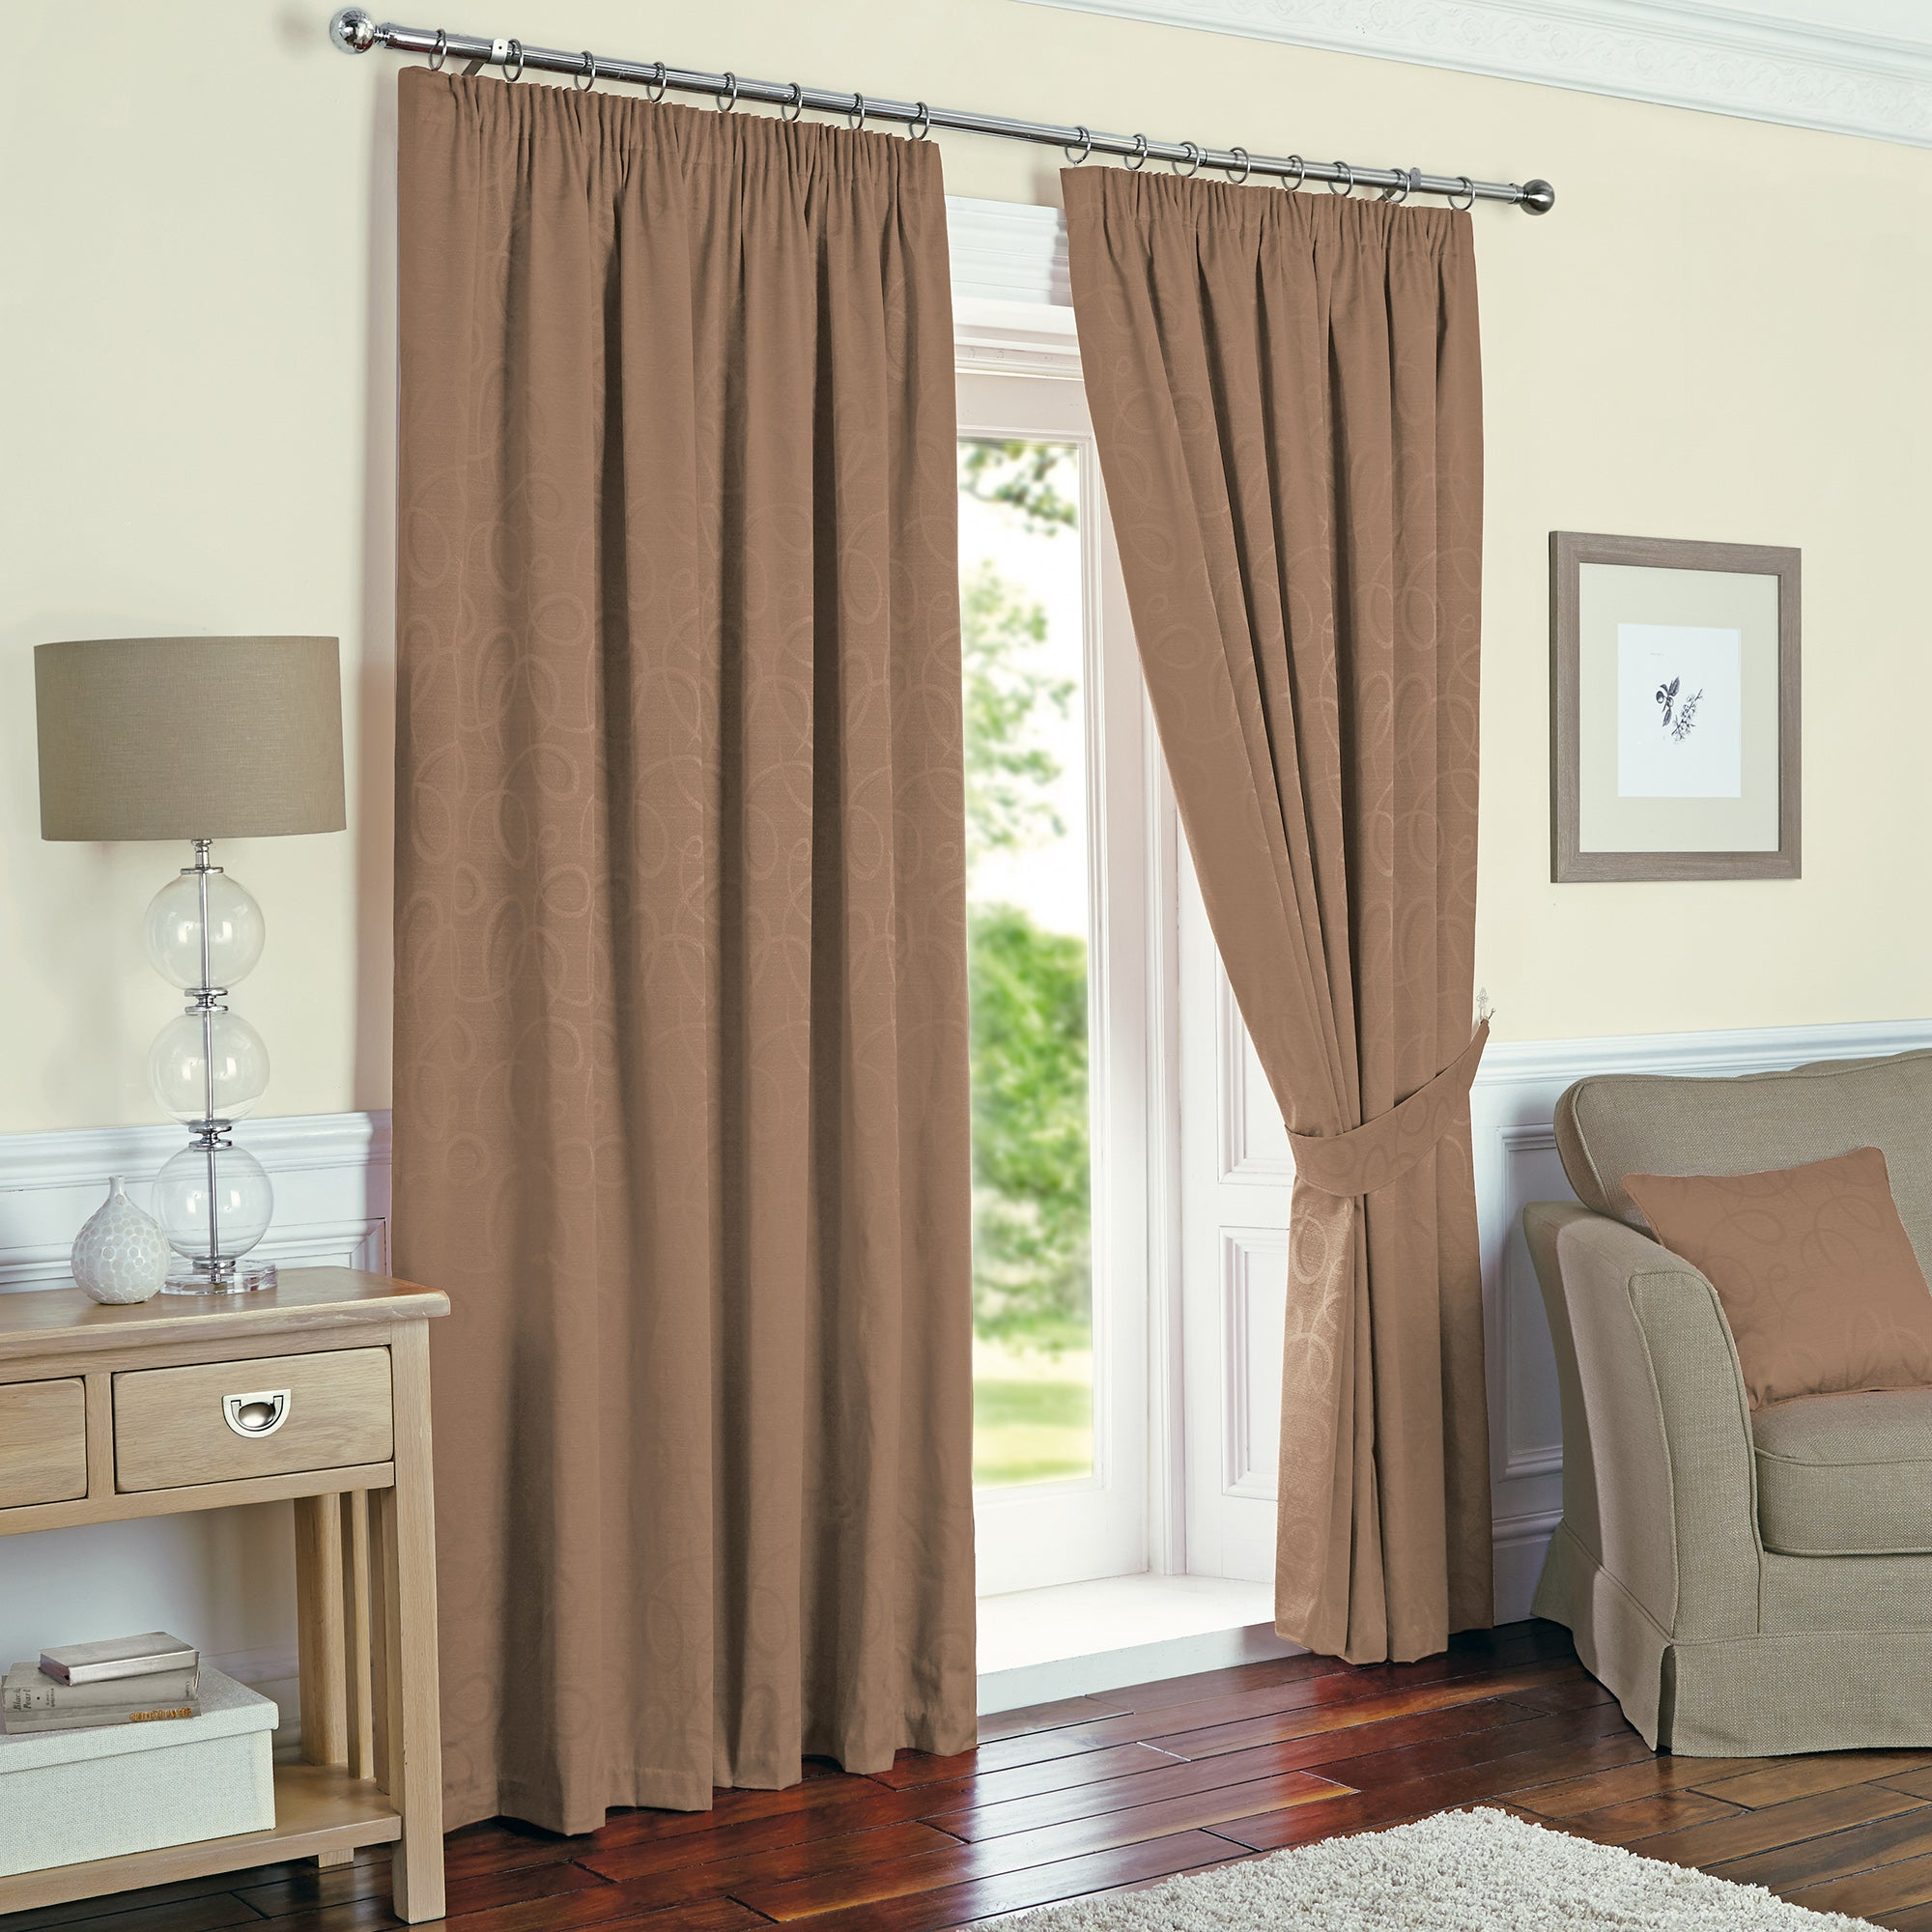 toledo mocha thermal pencil pleat curtains dunelm. Black Bedroom Furniture Sets. Home Design Ideas